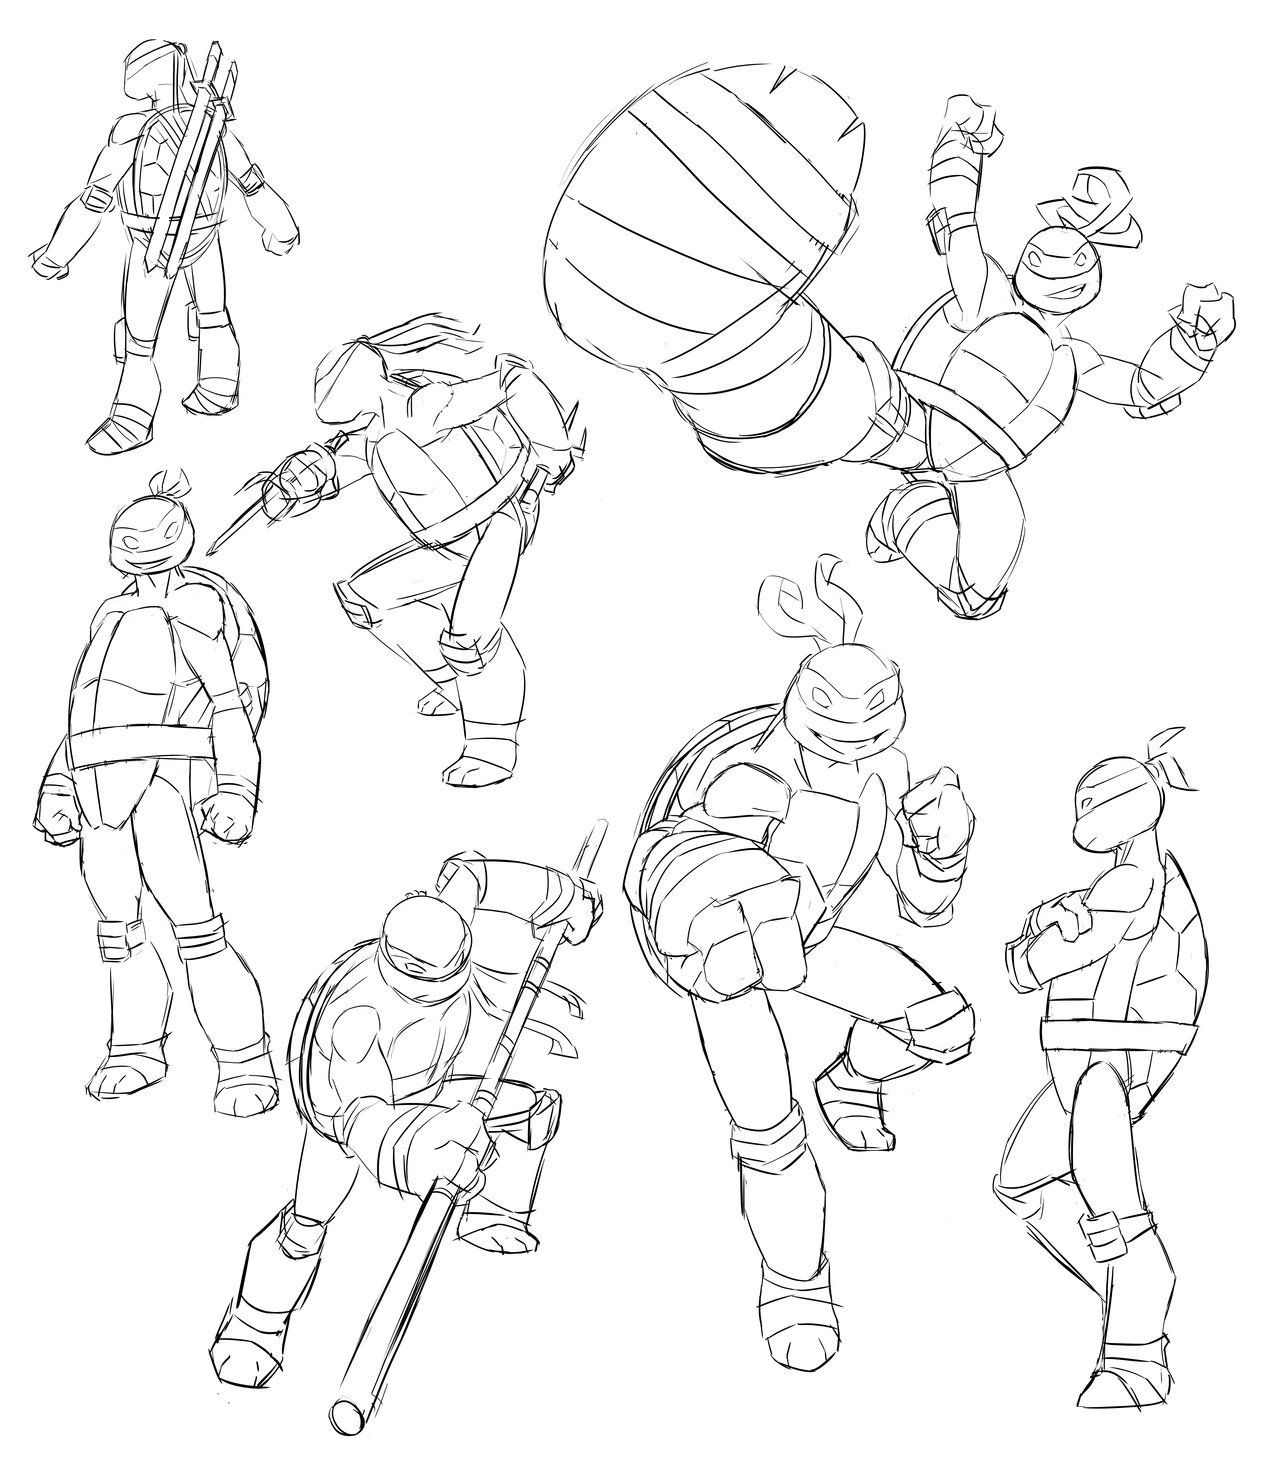 tmnt 2012 coloring pages new tmnt books available on amazon top hat sasquatch 2012 pages tmnt coloring